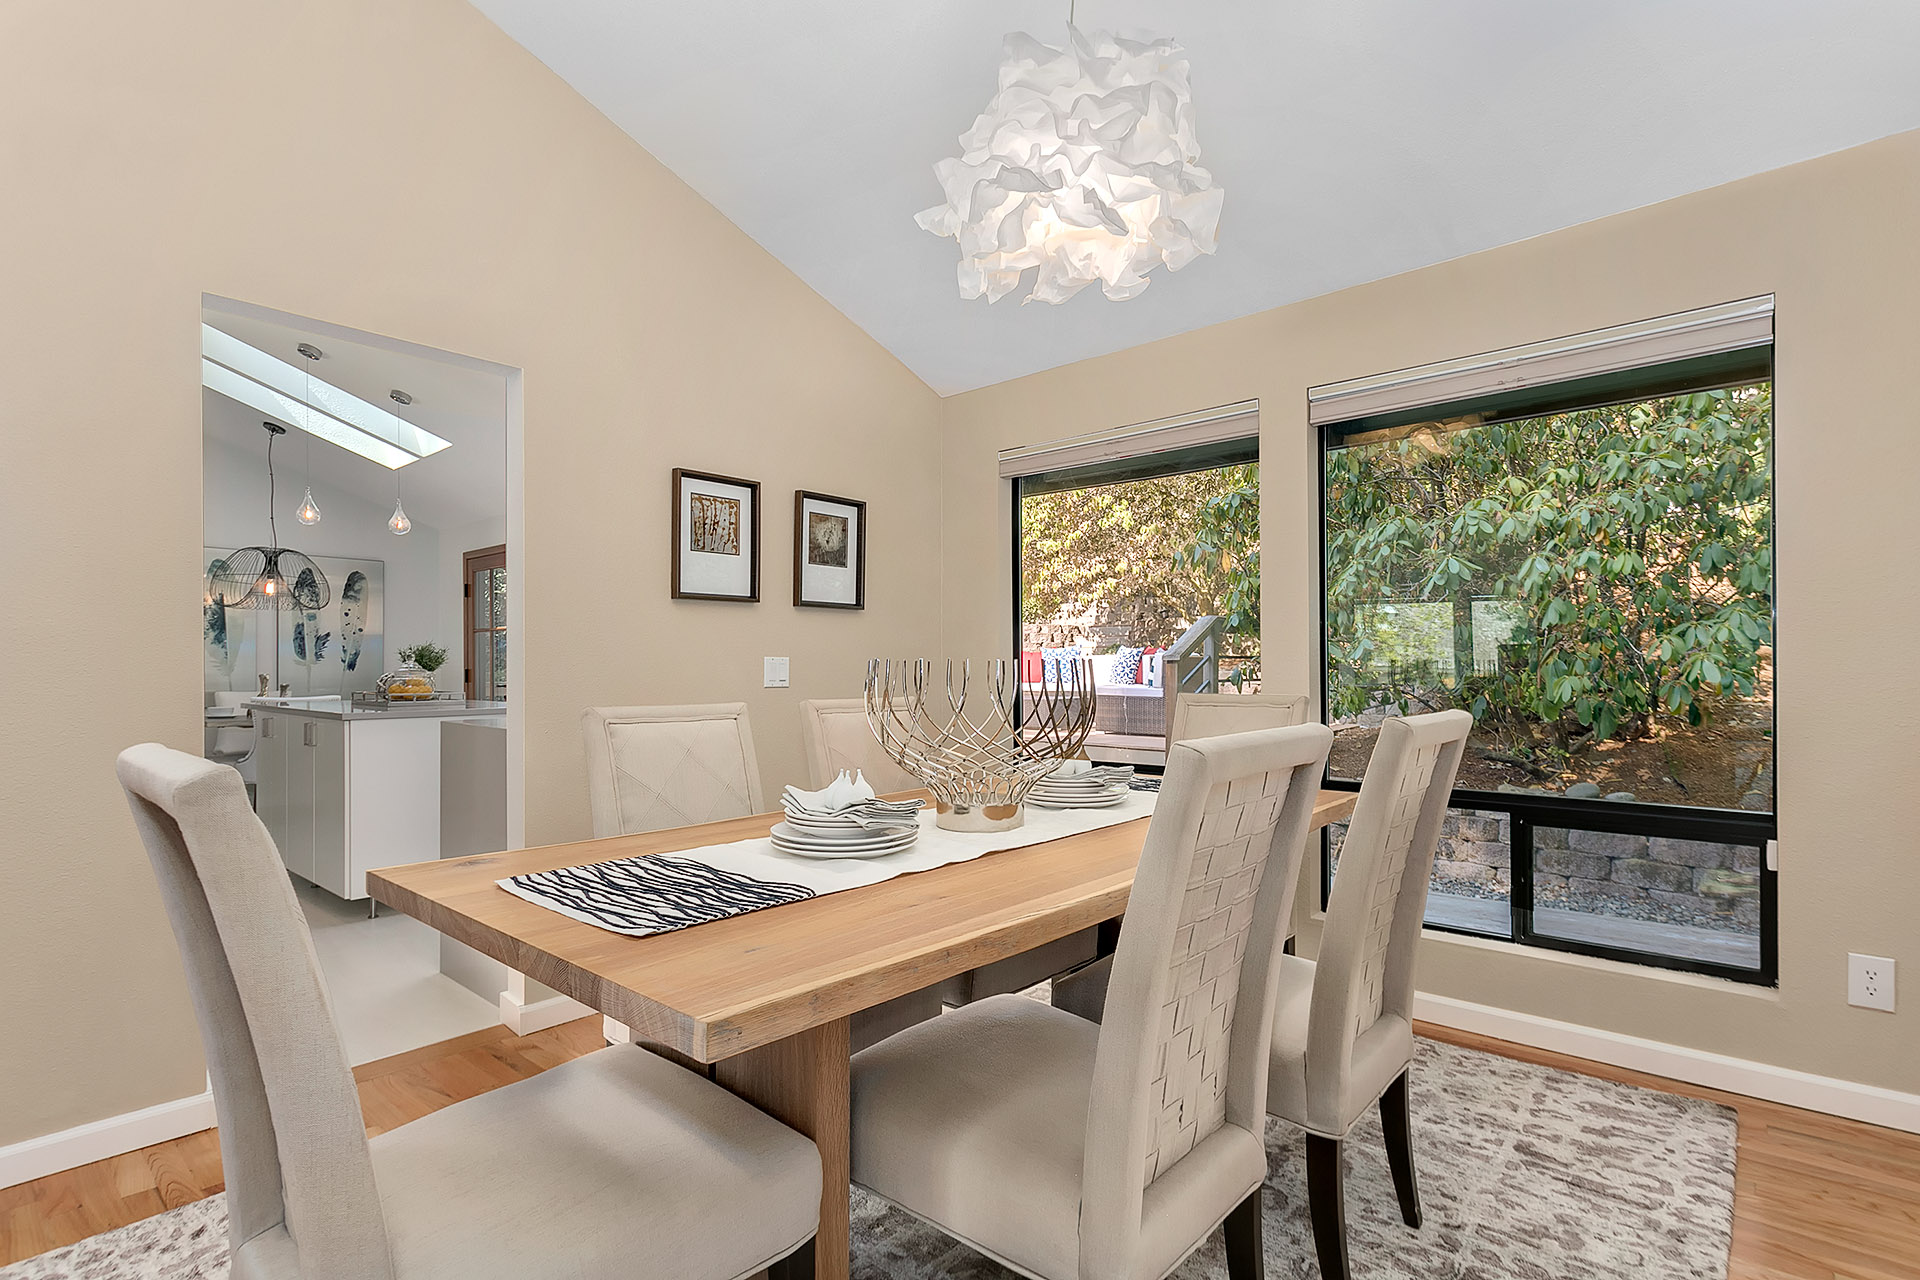 How to Photograph Dining Rooms for Real Estate